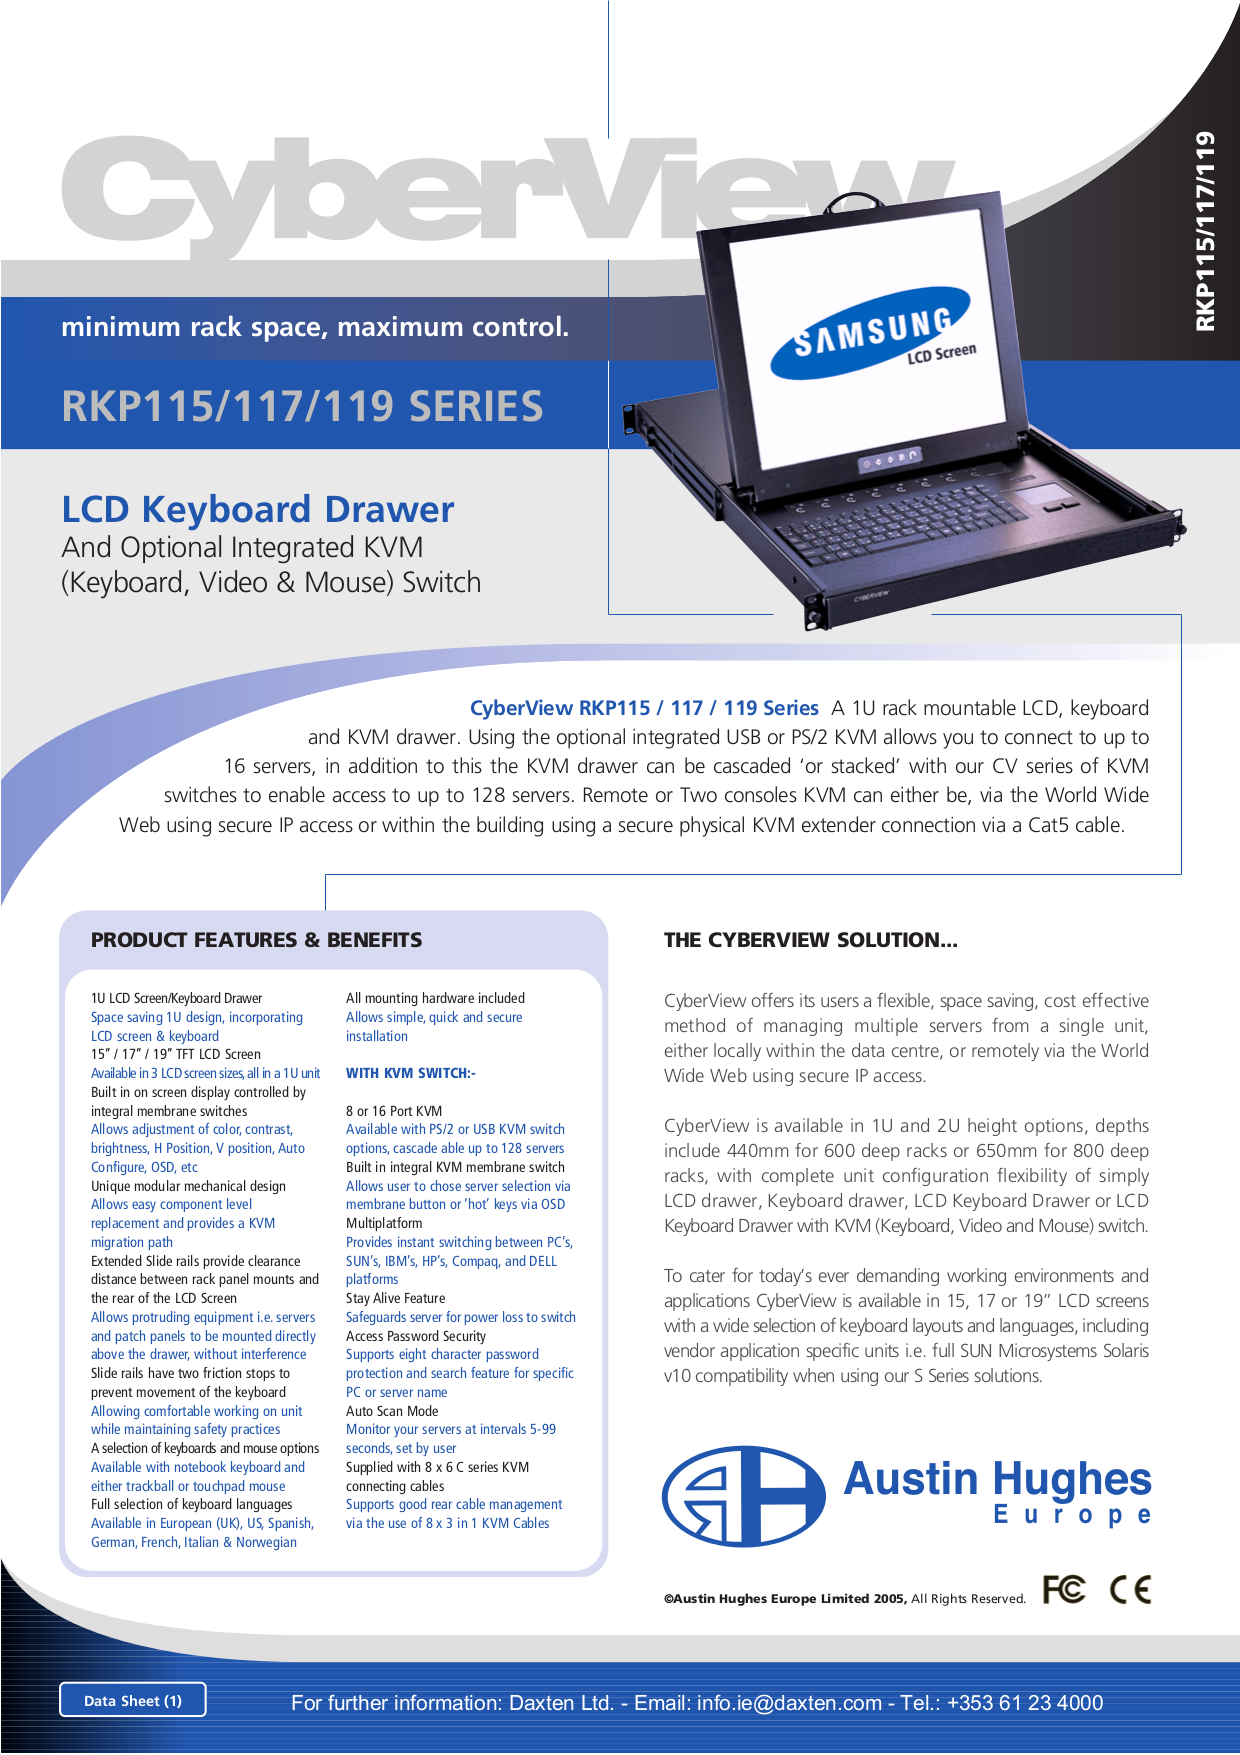 pdf for I-Tech Other RKP115 Keyboard Drawers manual